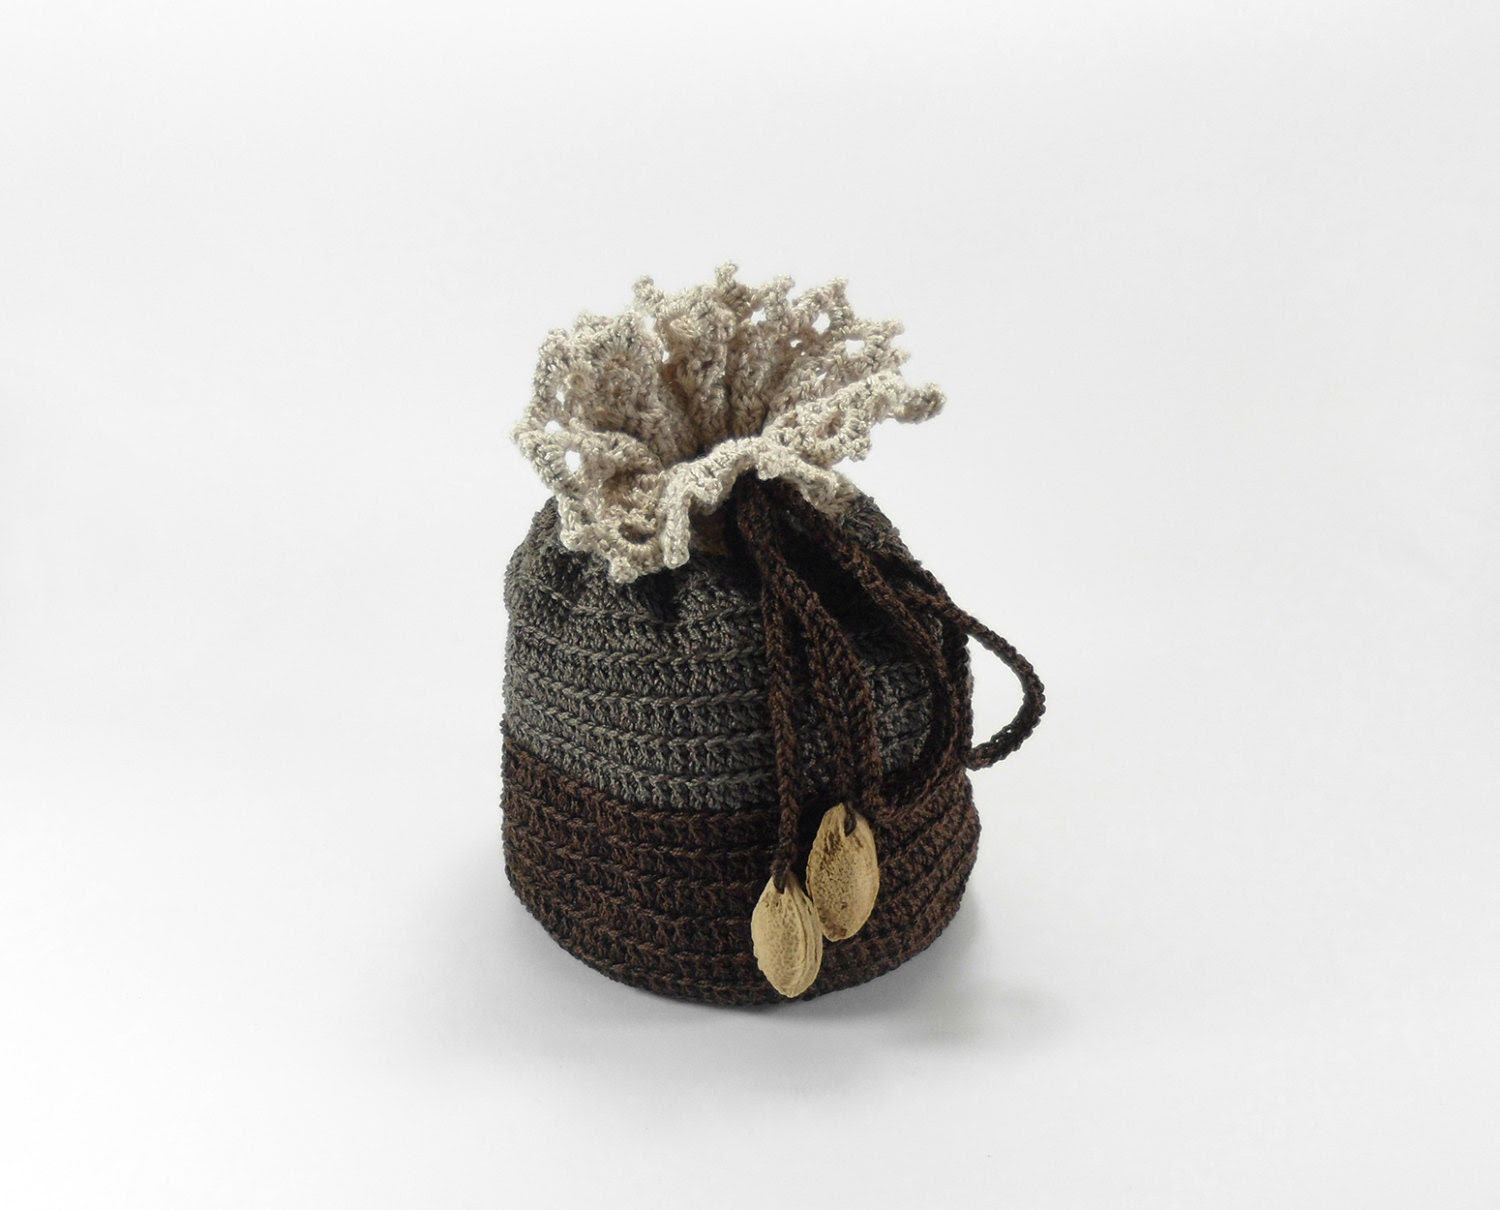 Jewelry Bag with Drawstring, Crochet Pouch,  Brown Gray Gift Bag - Smalkumi